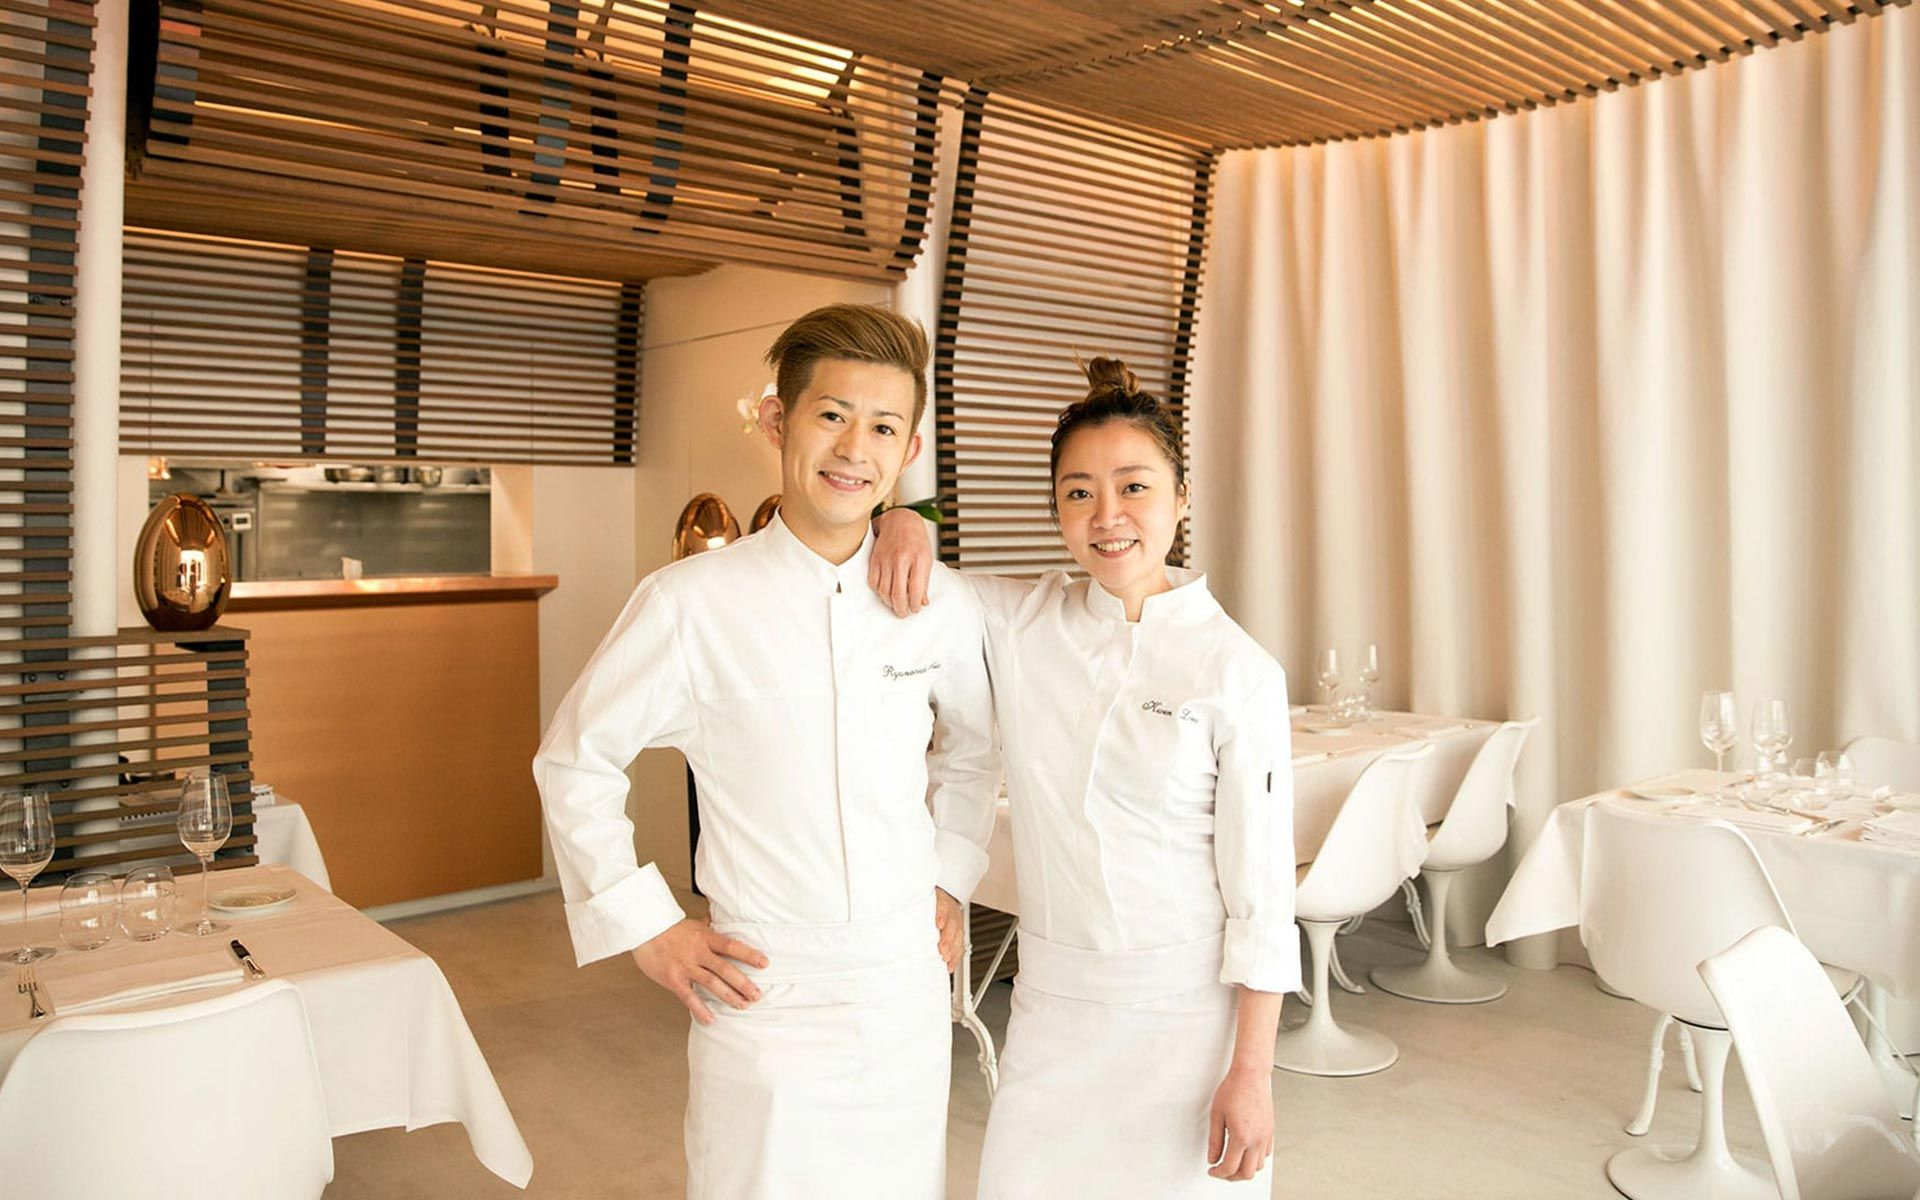 Malaysian Chef Kwen Liew Takes Home One Michelin Star In France